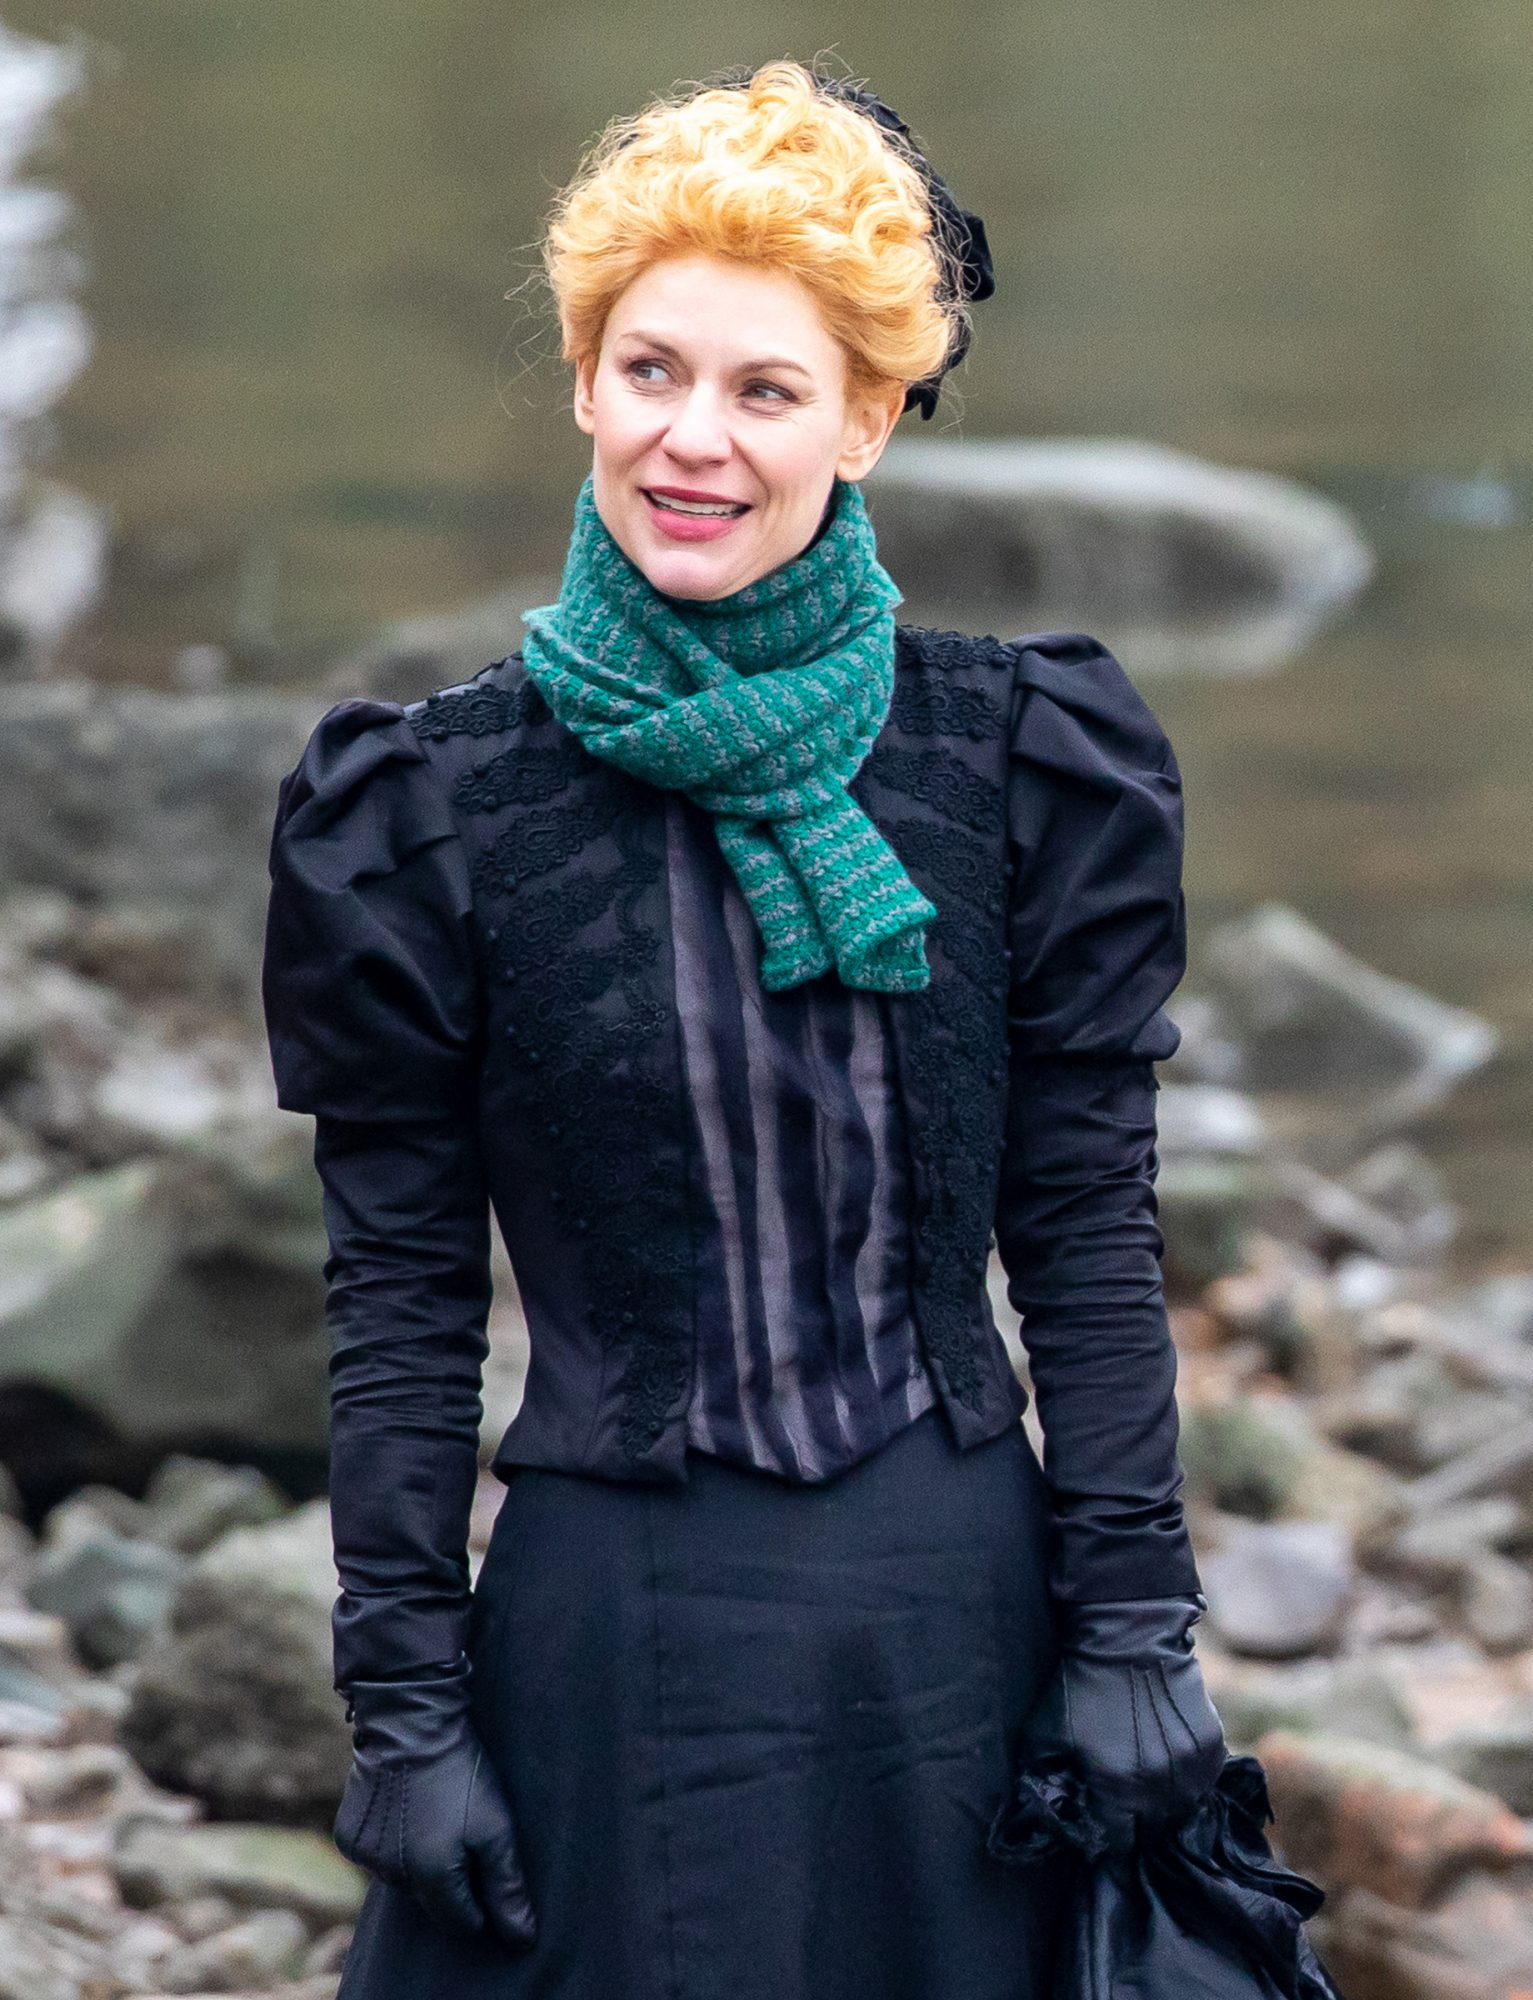 Claire Danes Filming 'The Essex Serpent' On The Bank Of The River Thames